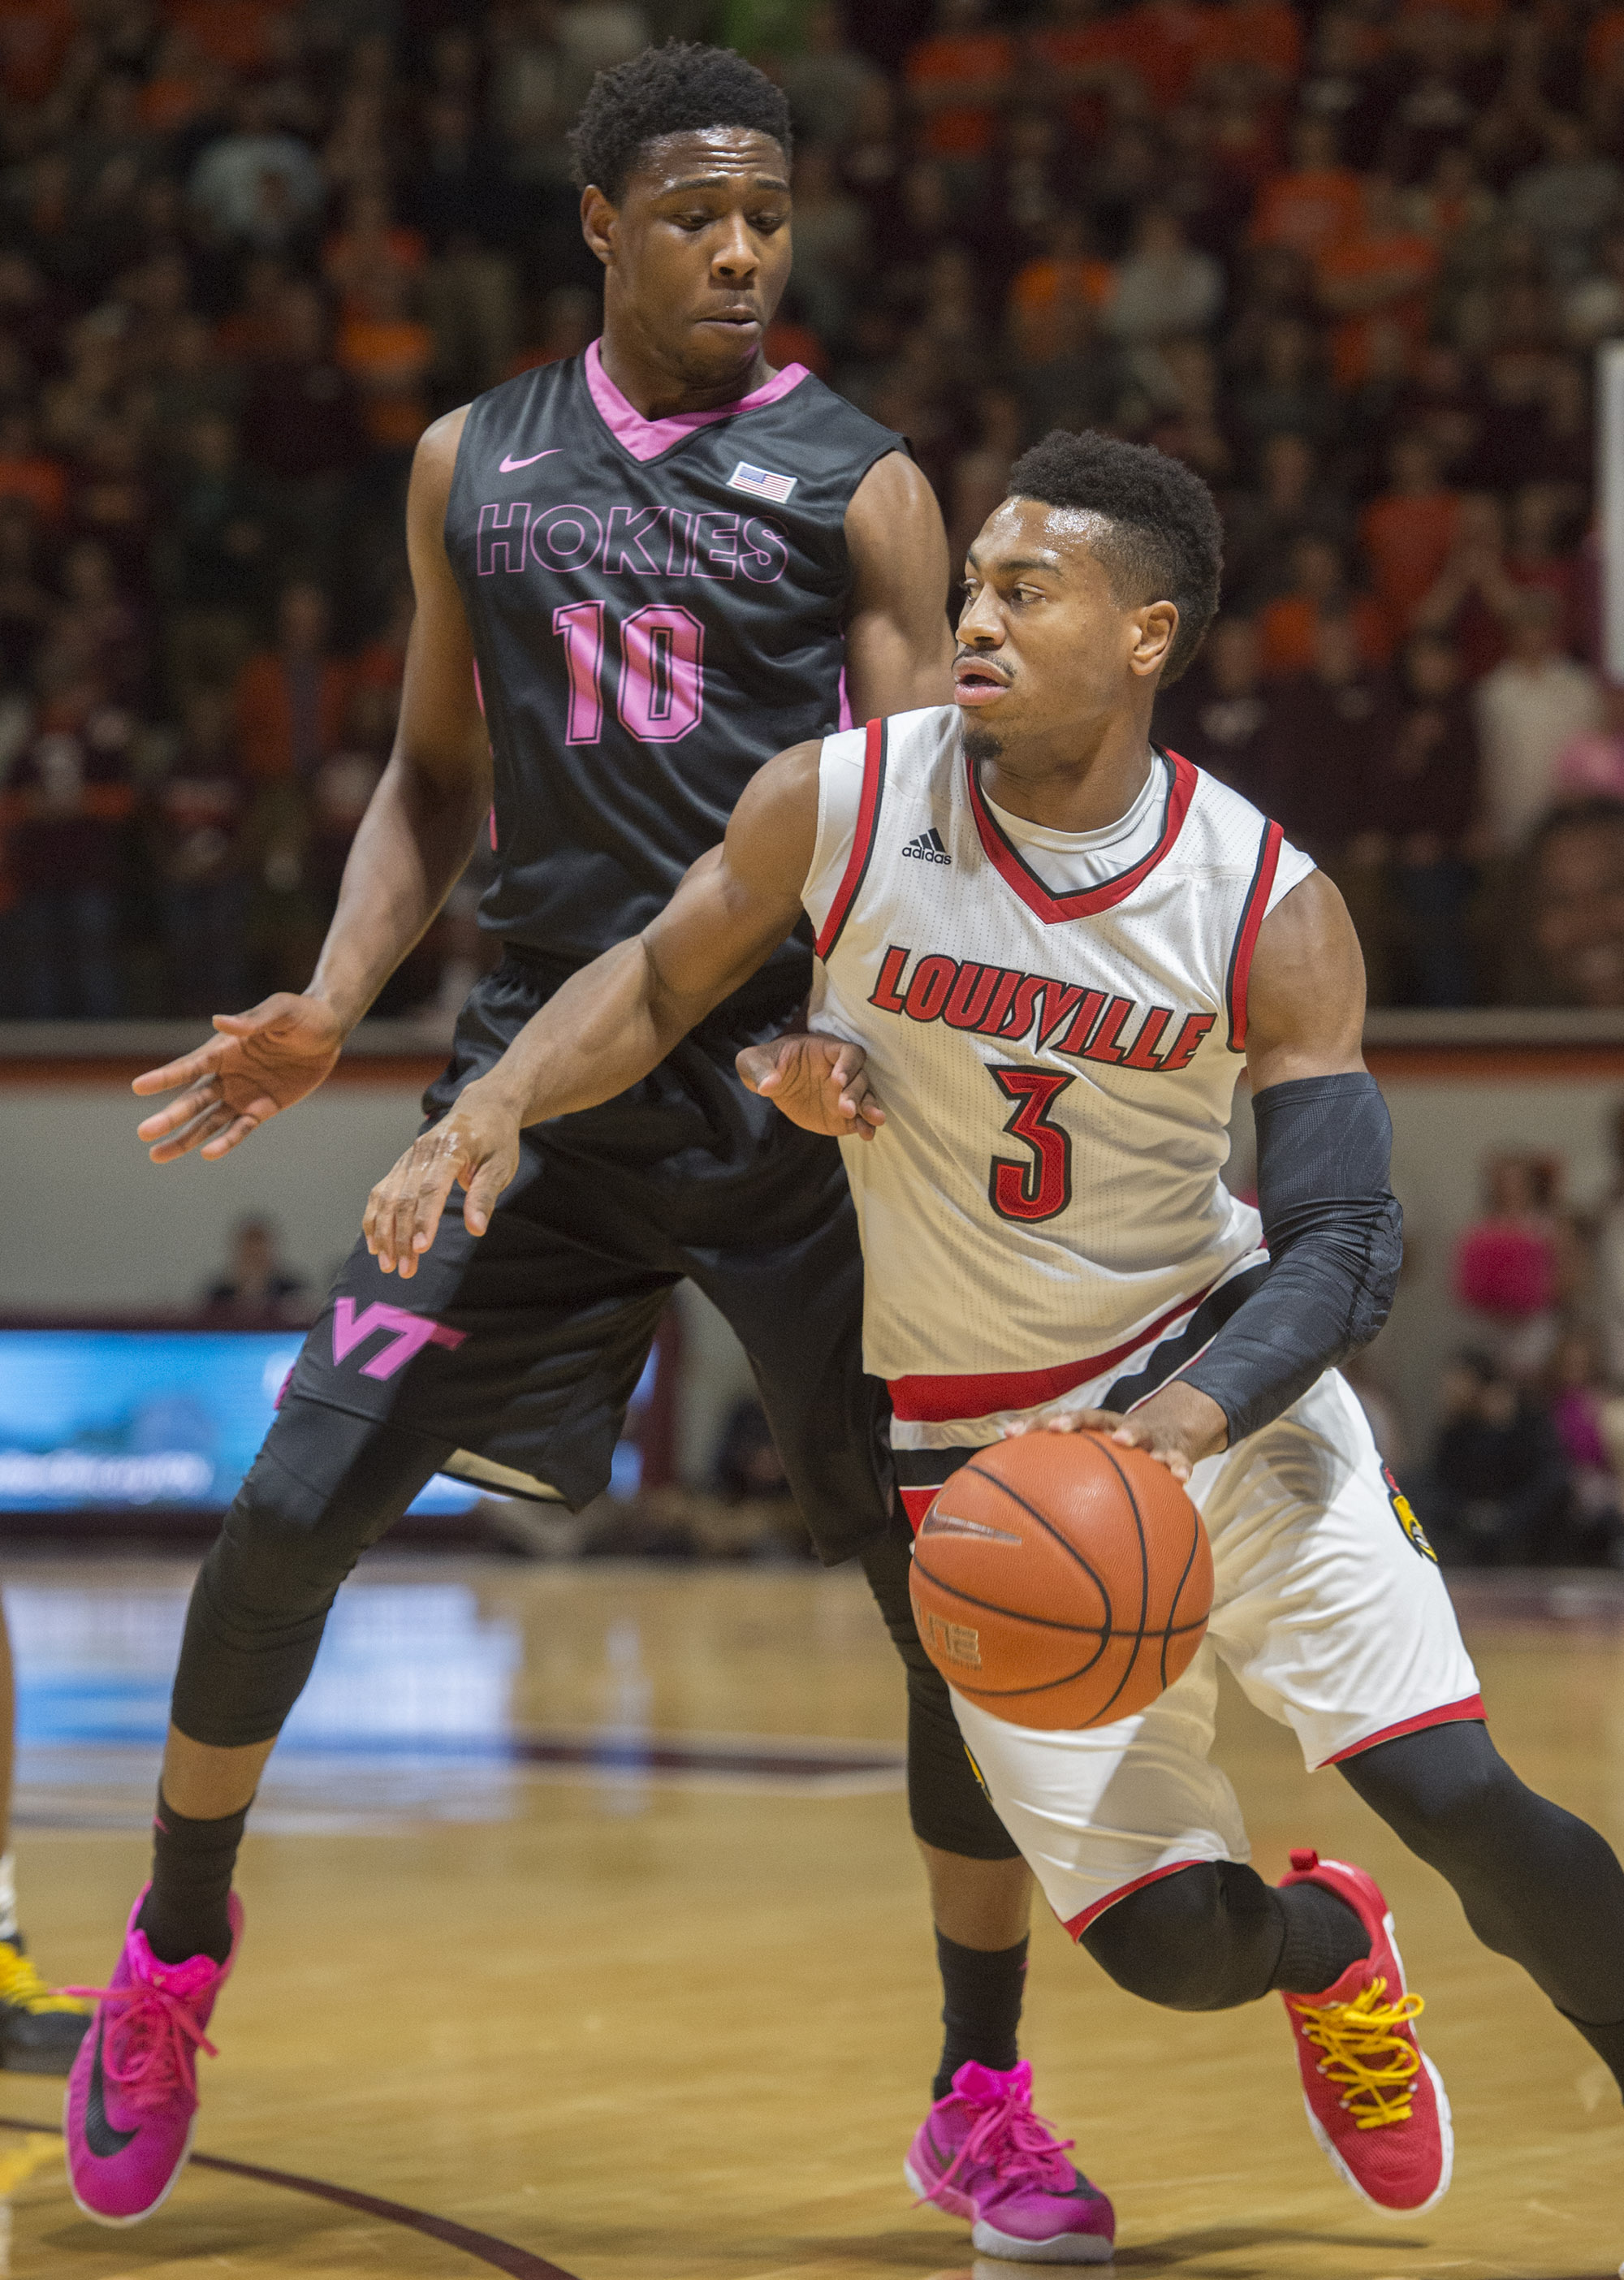 Louisville guard Trey Lewis (3) drives past Virginia Tech guard Justin Bibbs (10) during the first half of an NCAA college basketball game Wednesday, Jan. 27, 2016, in Blacksburg, Va. (AP Photo/Don Petersen)